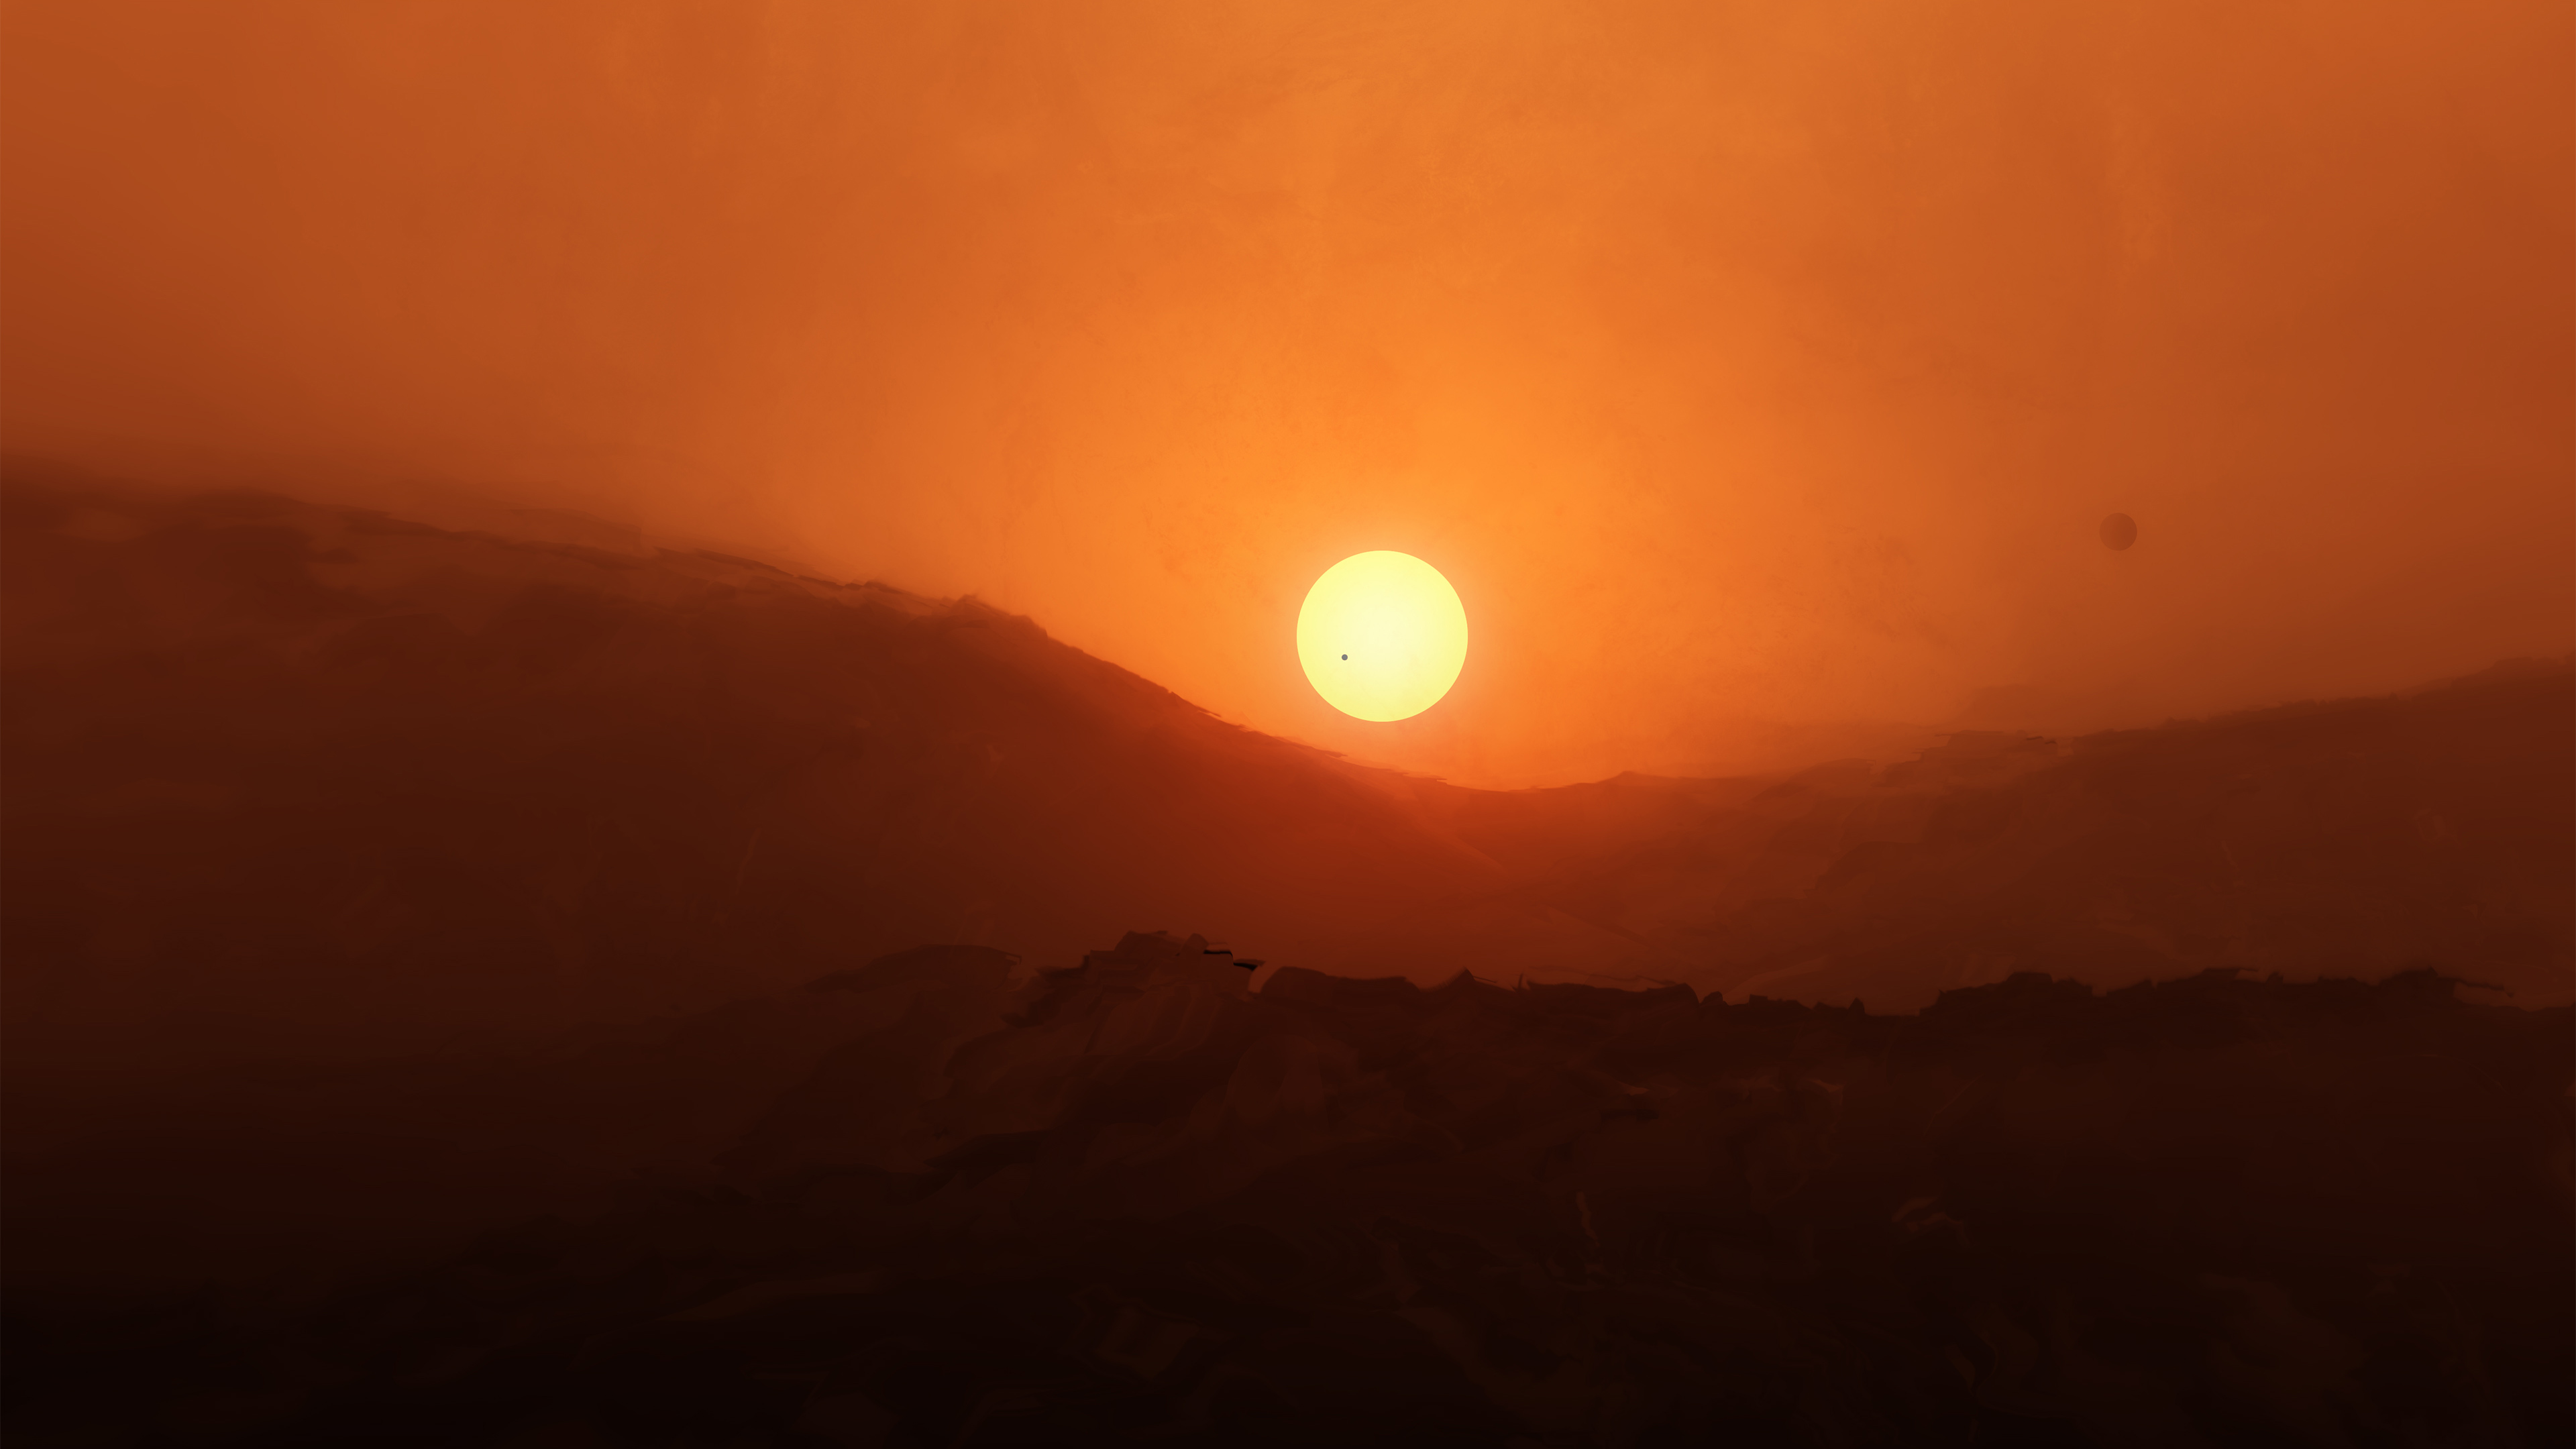 Sunrise Red Planet 4K4536215830 - Sunrise Red Planet 4K - sunrise, red, Planet